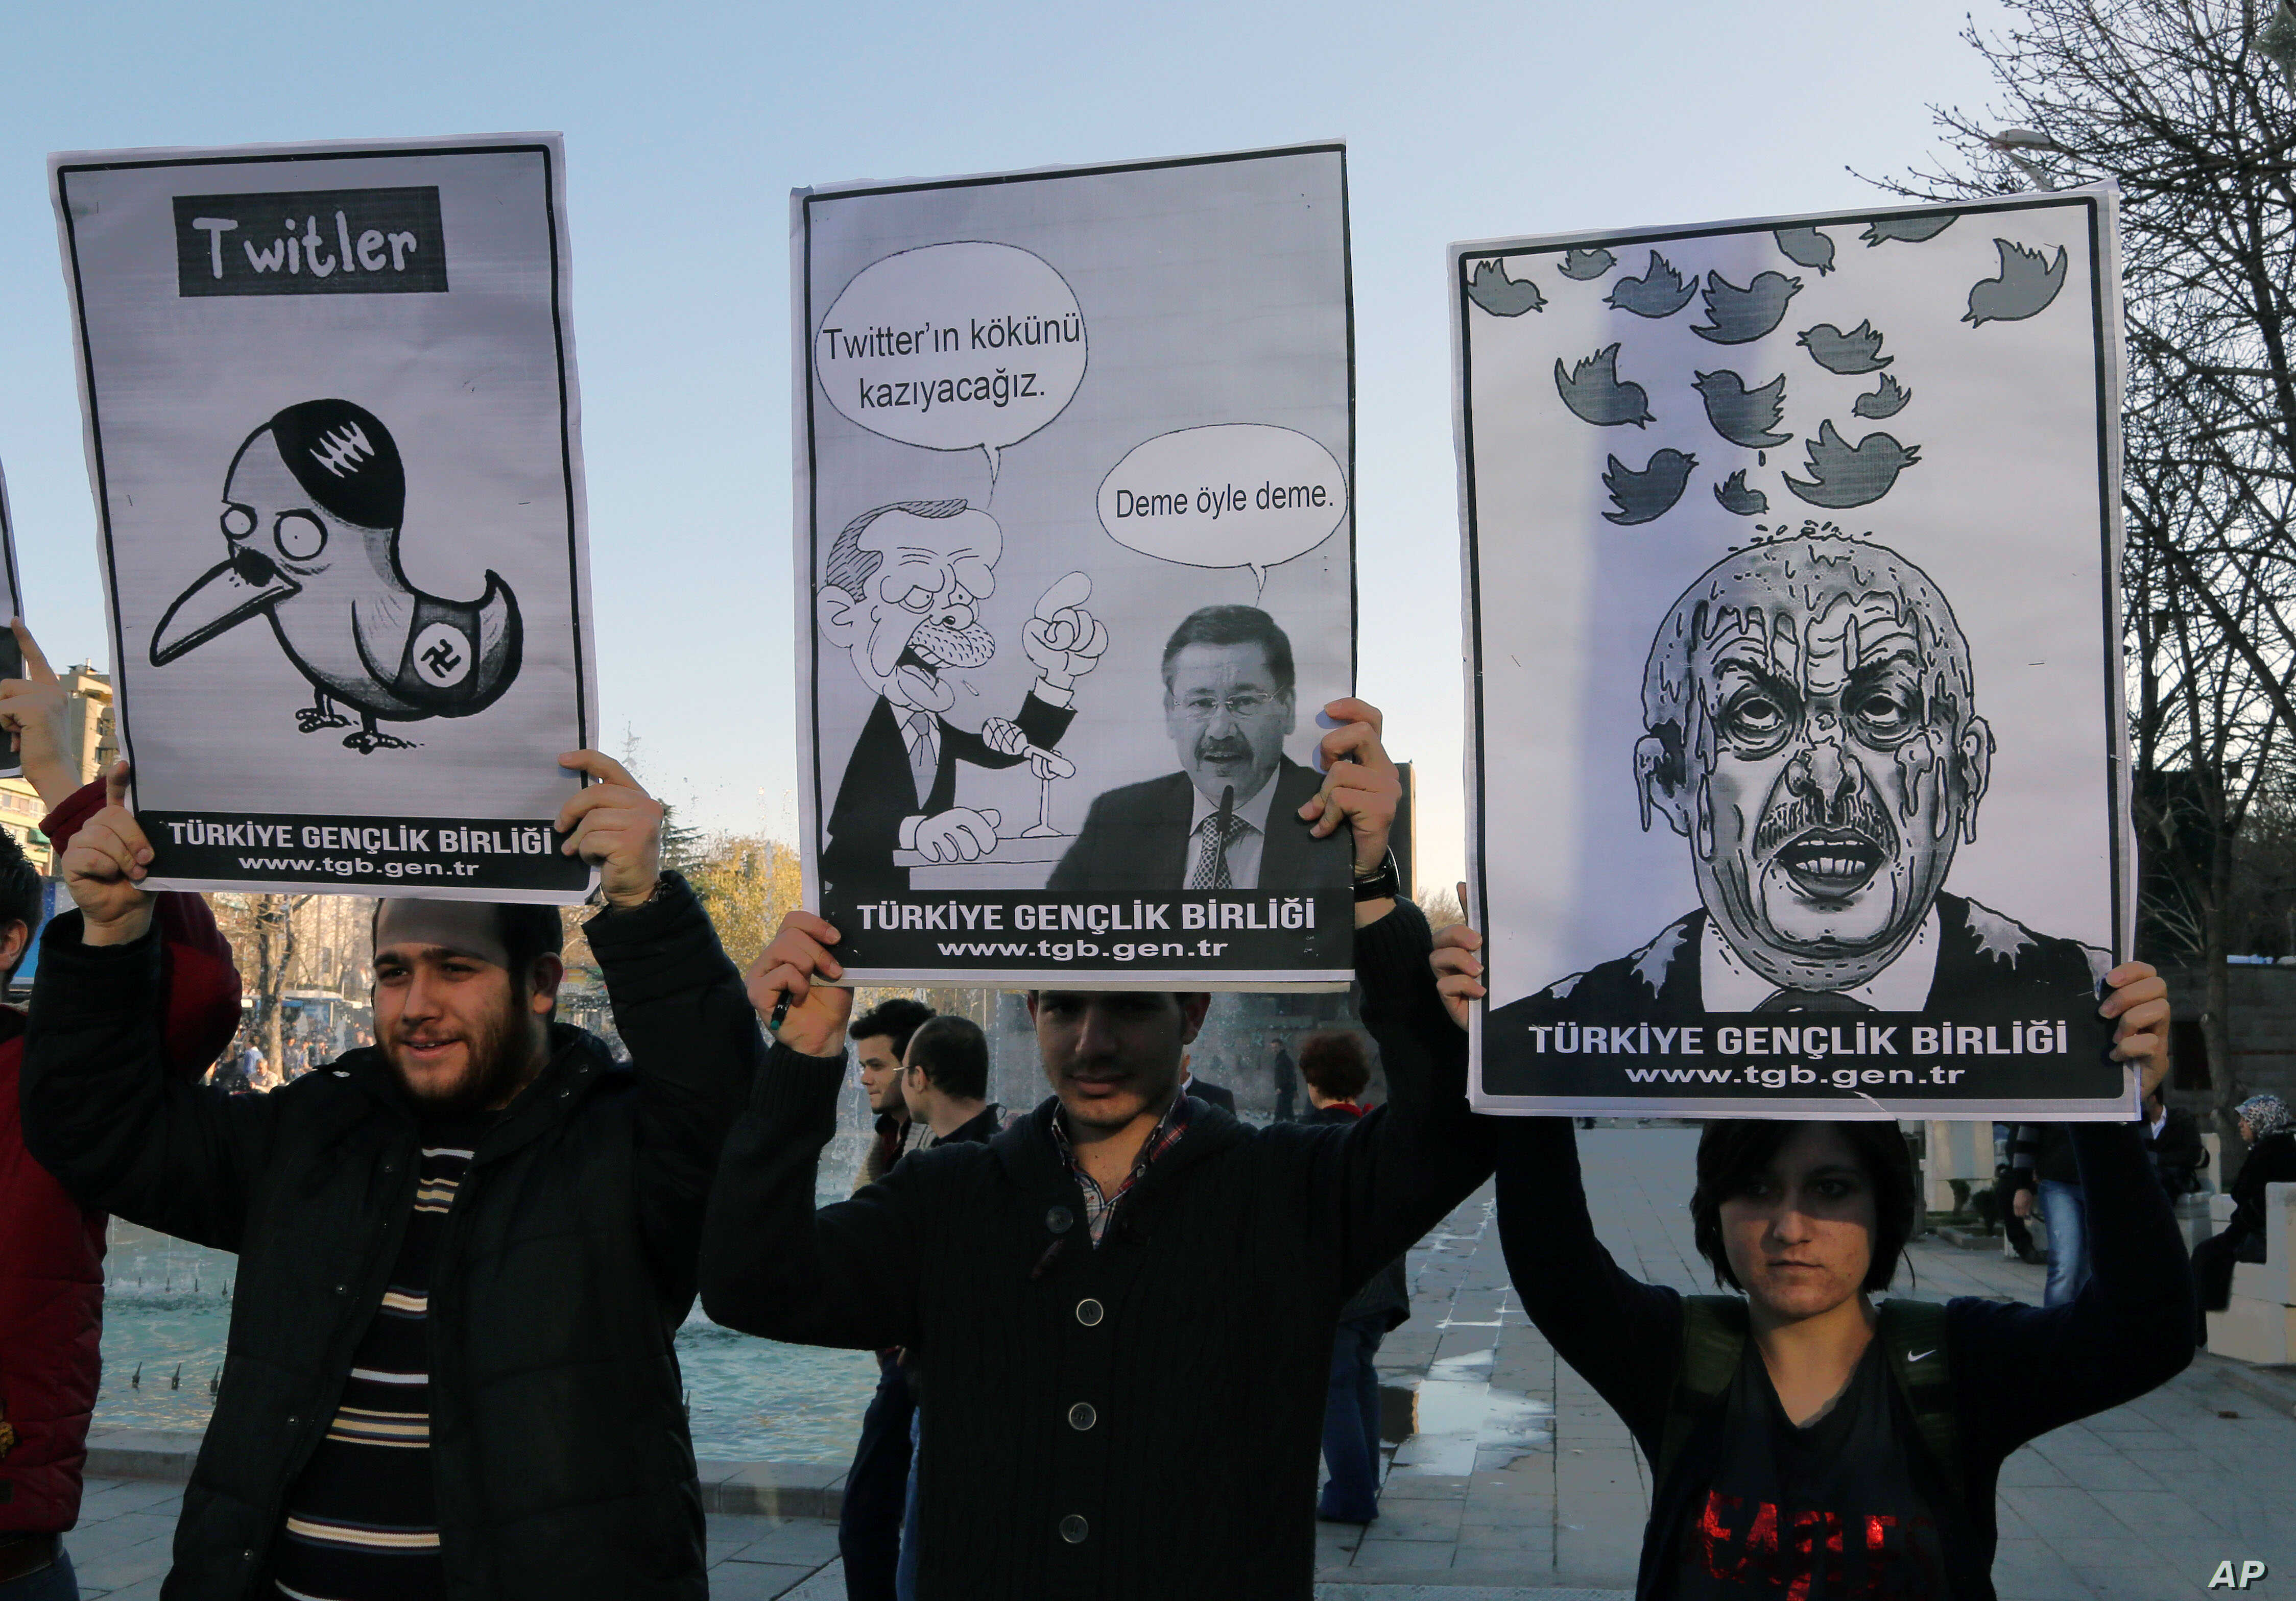 Members of the Turkish Youth Union hold cartoons depicting Turkey's Prime Minister Recep Tayyip Erdogan during a protest against a ban on Twitter, in Ankara, March 21, 2014.